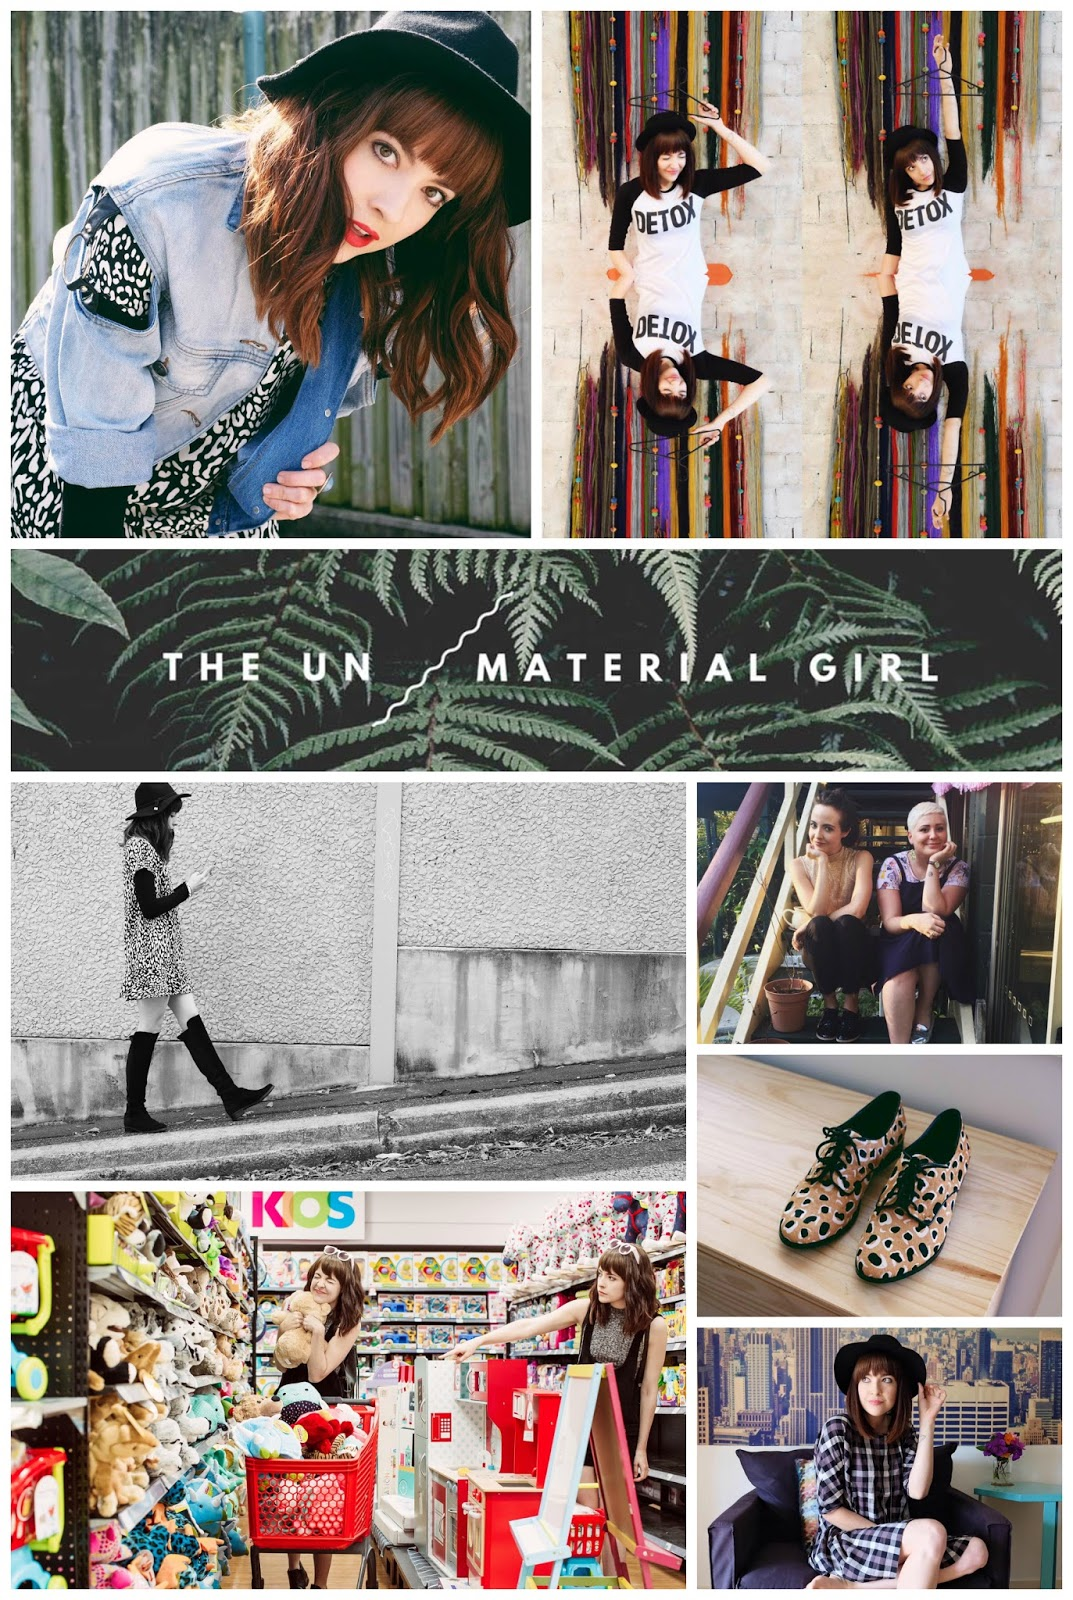 blog crush, blog crushes, best blogs, blog recommendation, favourite blog. slow fashion blog, ethical fashion, australian blogger, The Un-Material Girl, shop small, vlogger, ethical vlogger, slow fashion vlogger